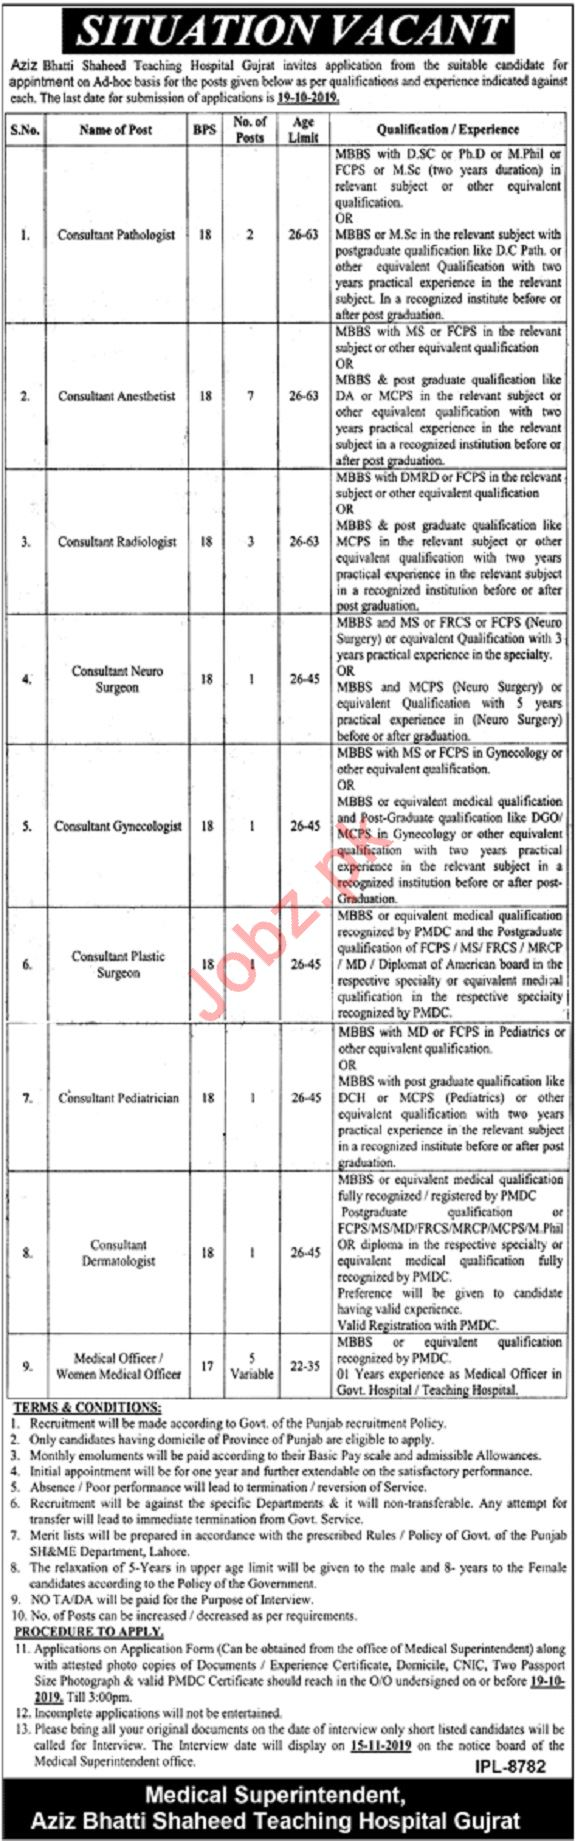 Aziz Bhatti Shaheed Teaching Hospital Jobs in Gujrat